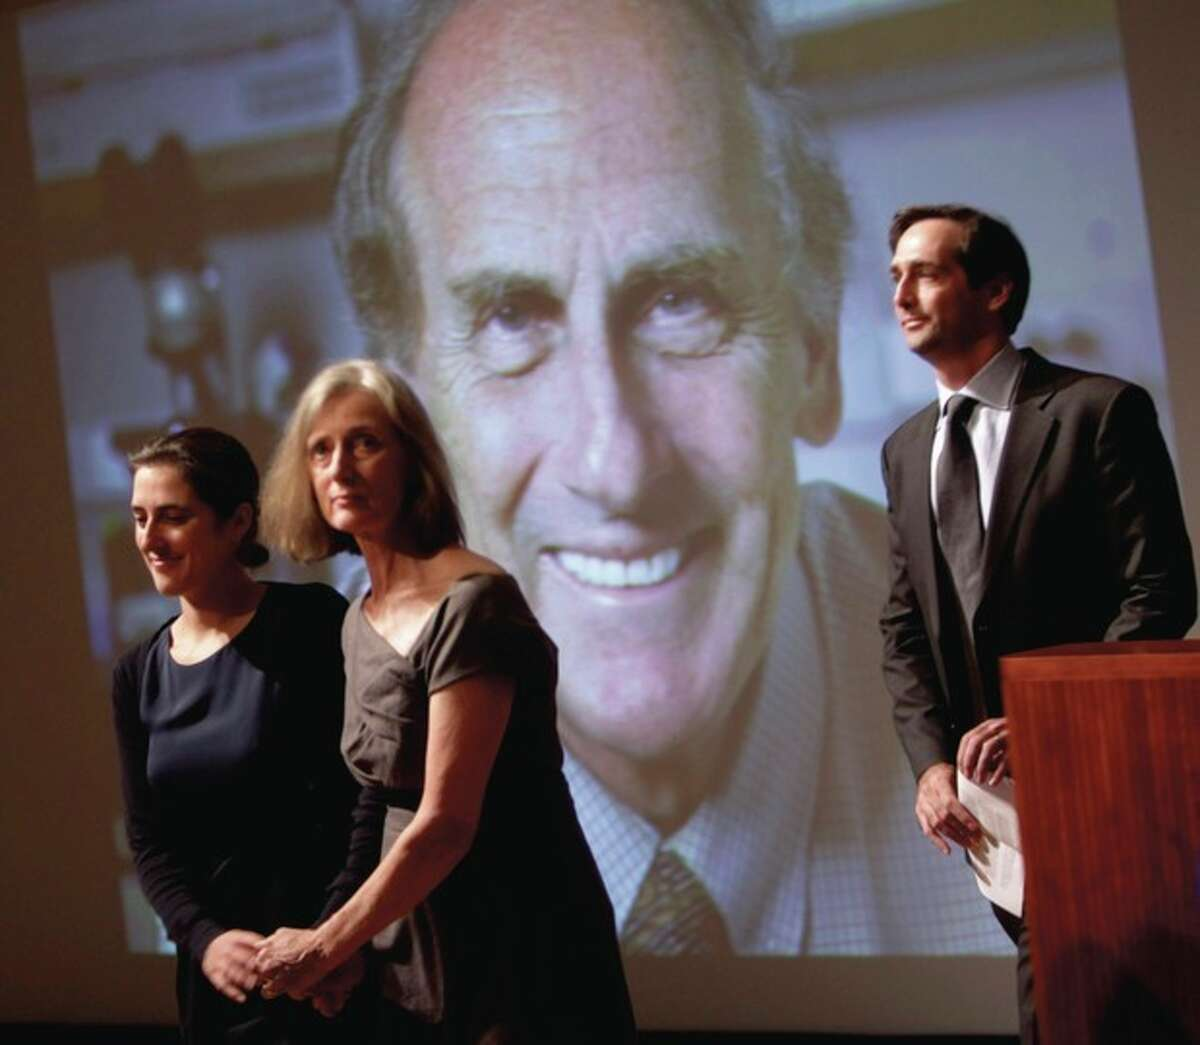 AP photo / Seth Wenig Family members of Nobel prize winner Ralph Steinman walk in front of a picture of Steinman during a ceremony honoring him at Rockefeller University in New York, Monday. From left to right are daughter Lesley Steinman, wife Claudia Steinman and son Adam Steinman.